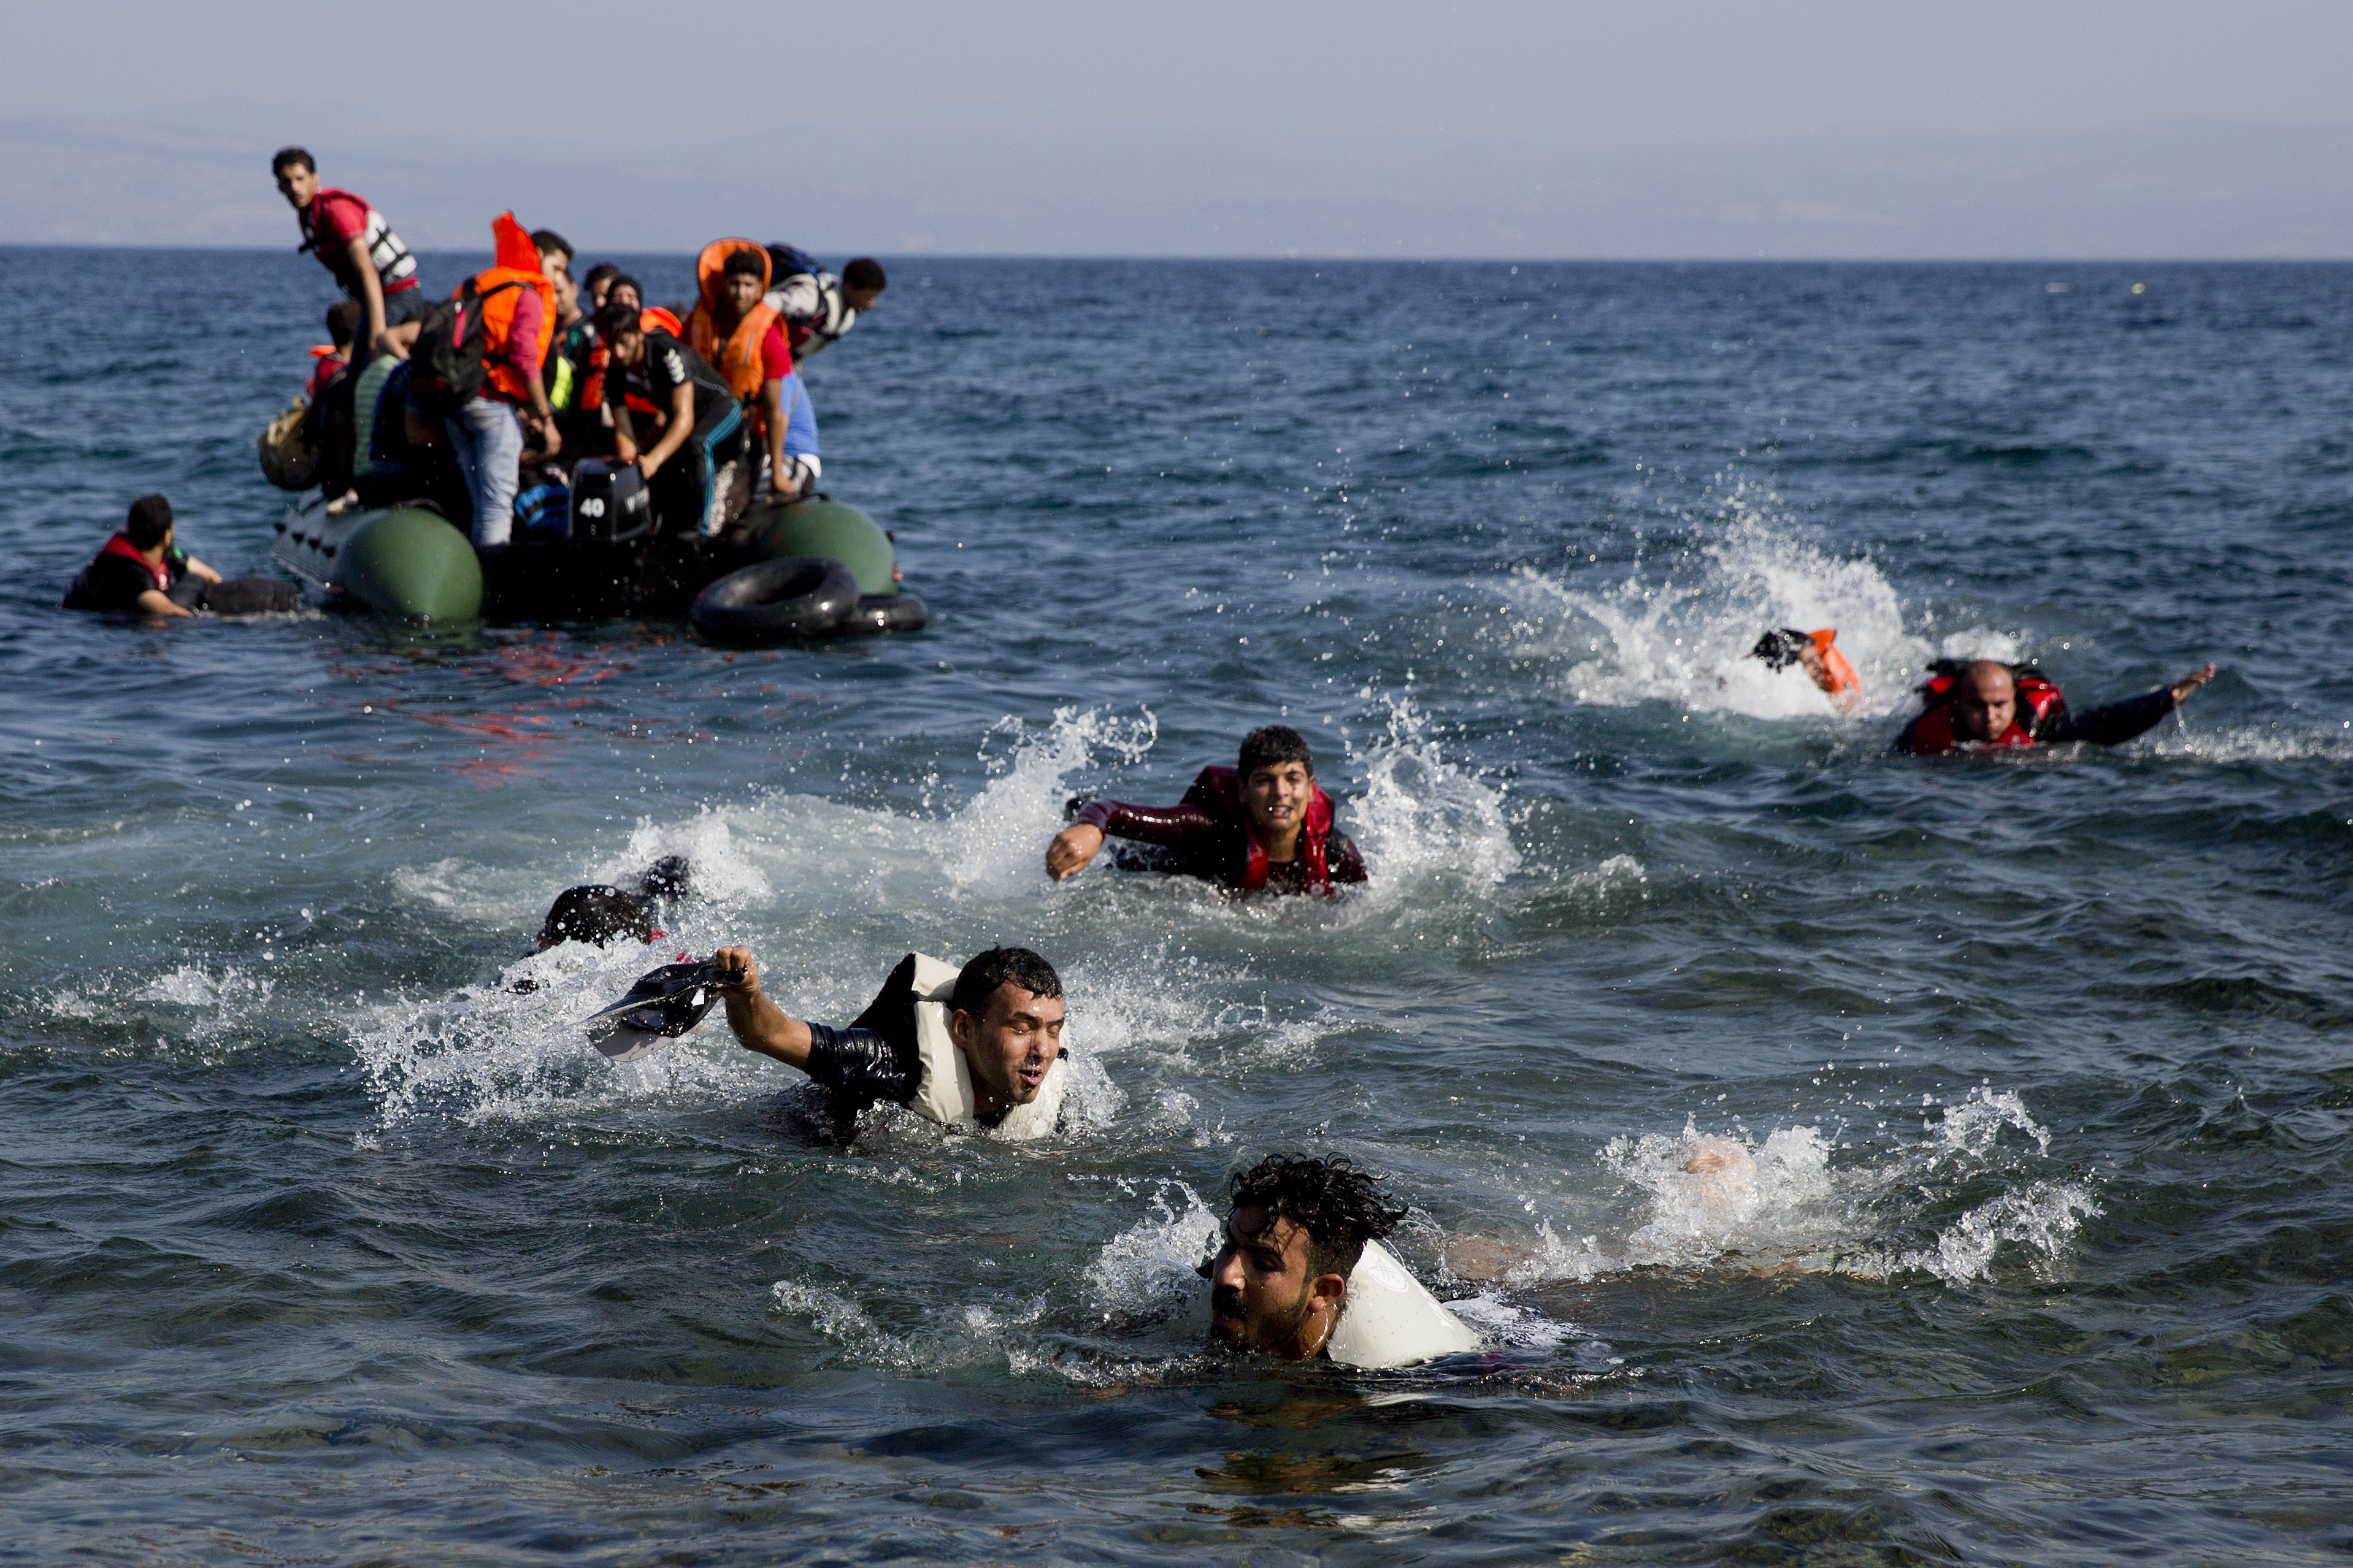 Migrant whose boat stalled at sea while crossing from Turkey to Greece swim to approach the shore of the island of Lesbos, Greece, Sept. 20, 2015.